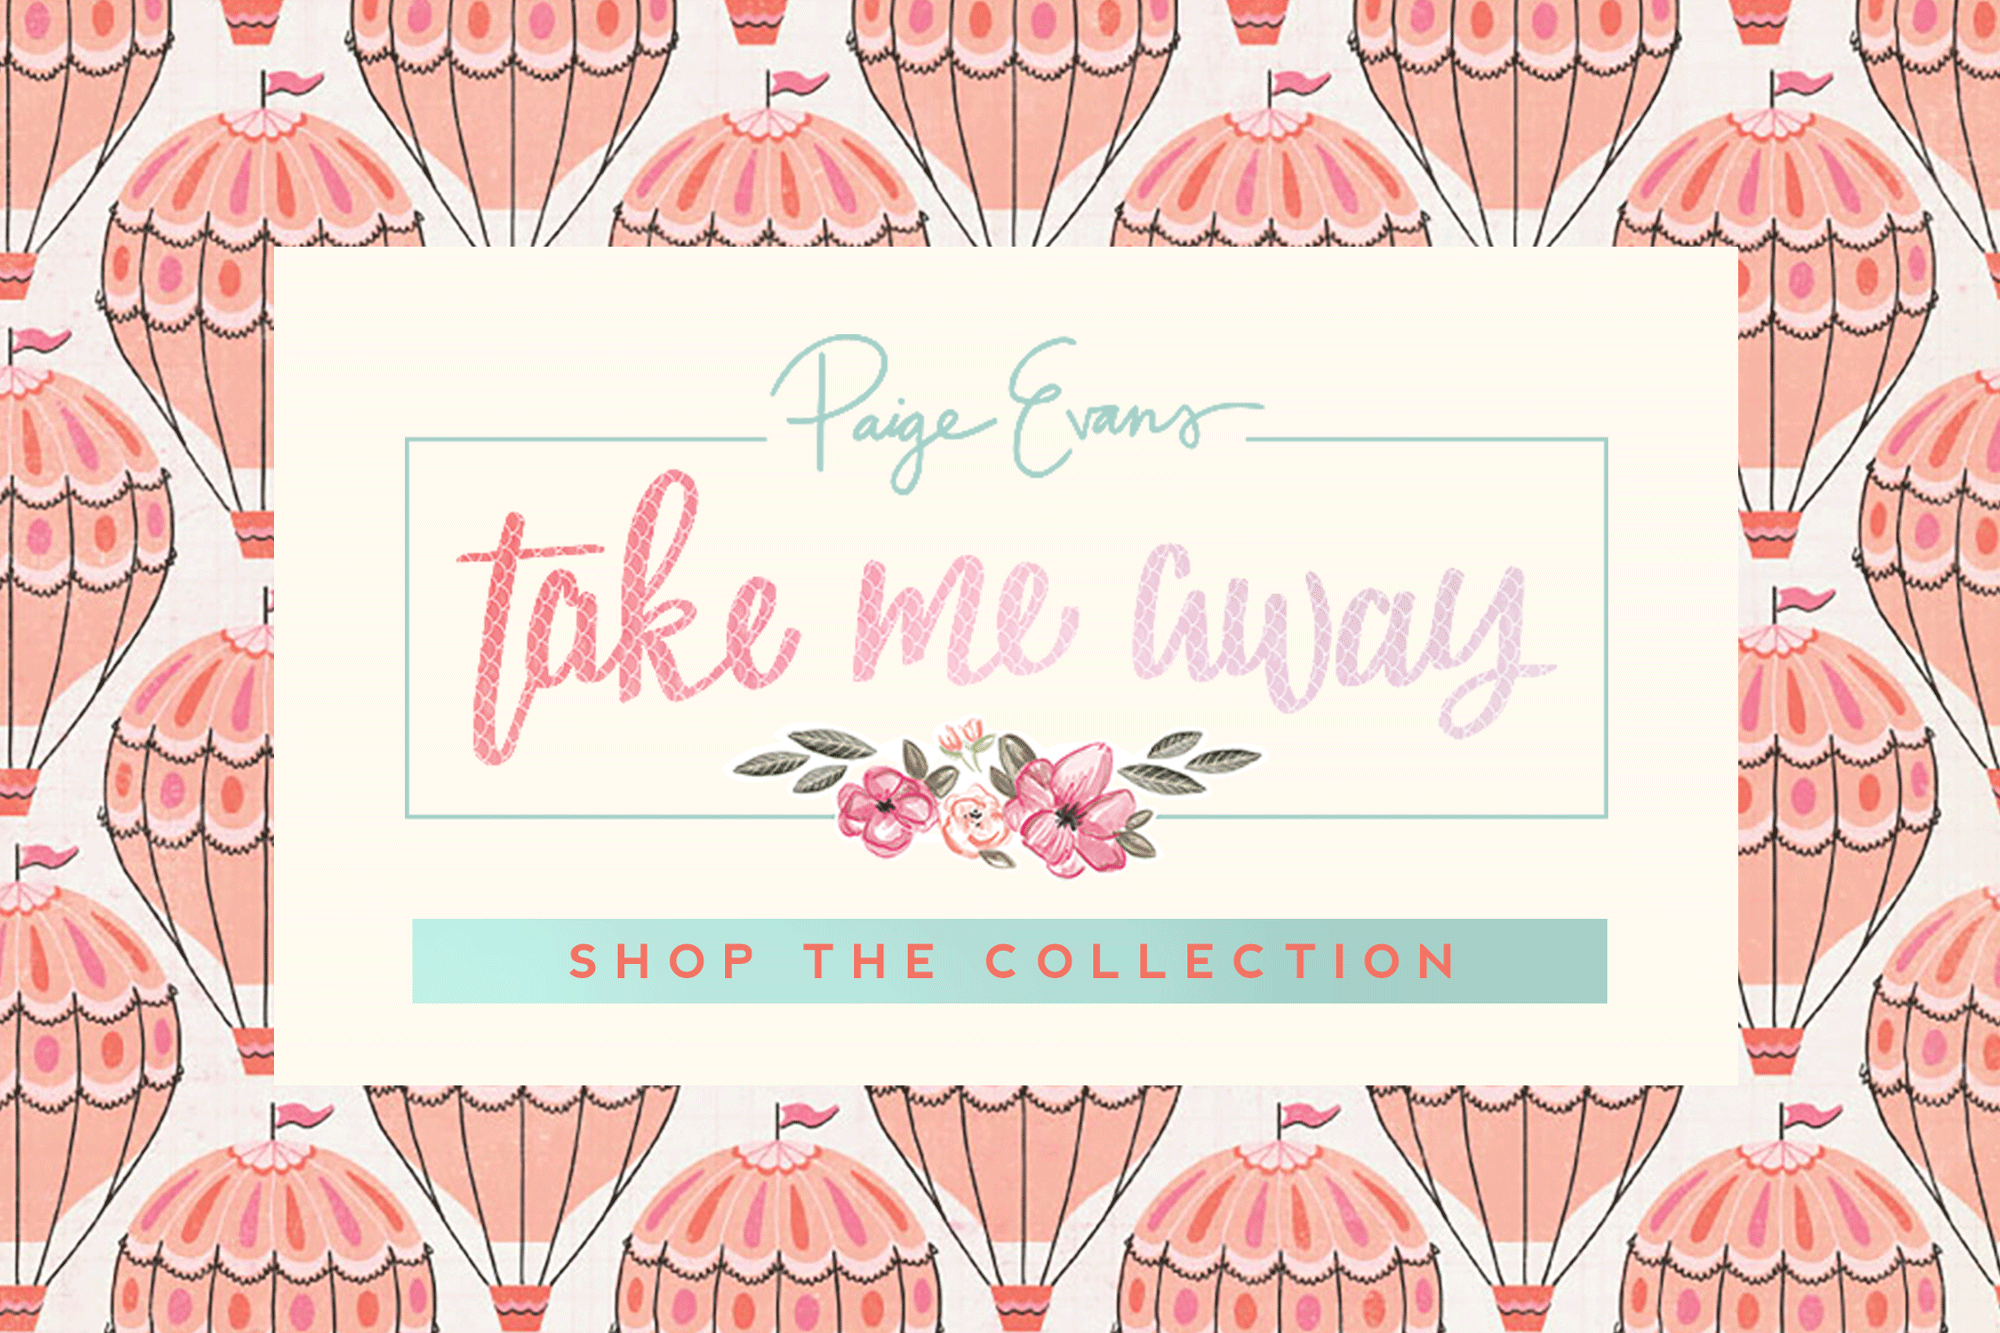 PP-PAIGE-EVANS-TAKE-ME-AWAY-SLIDER-